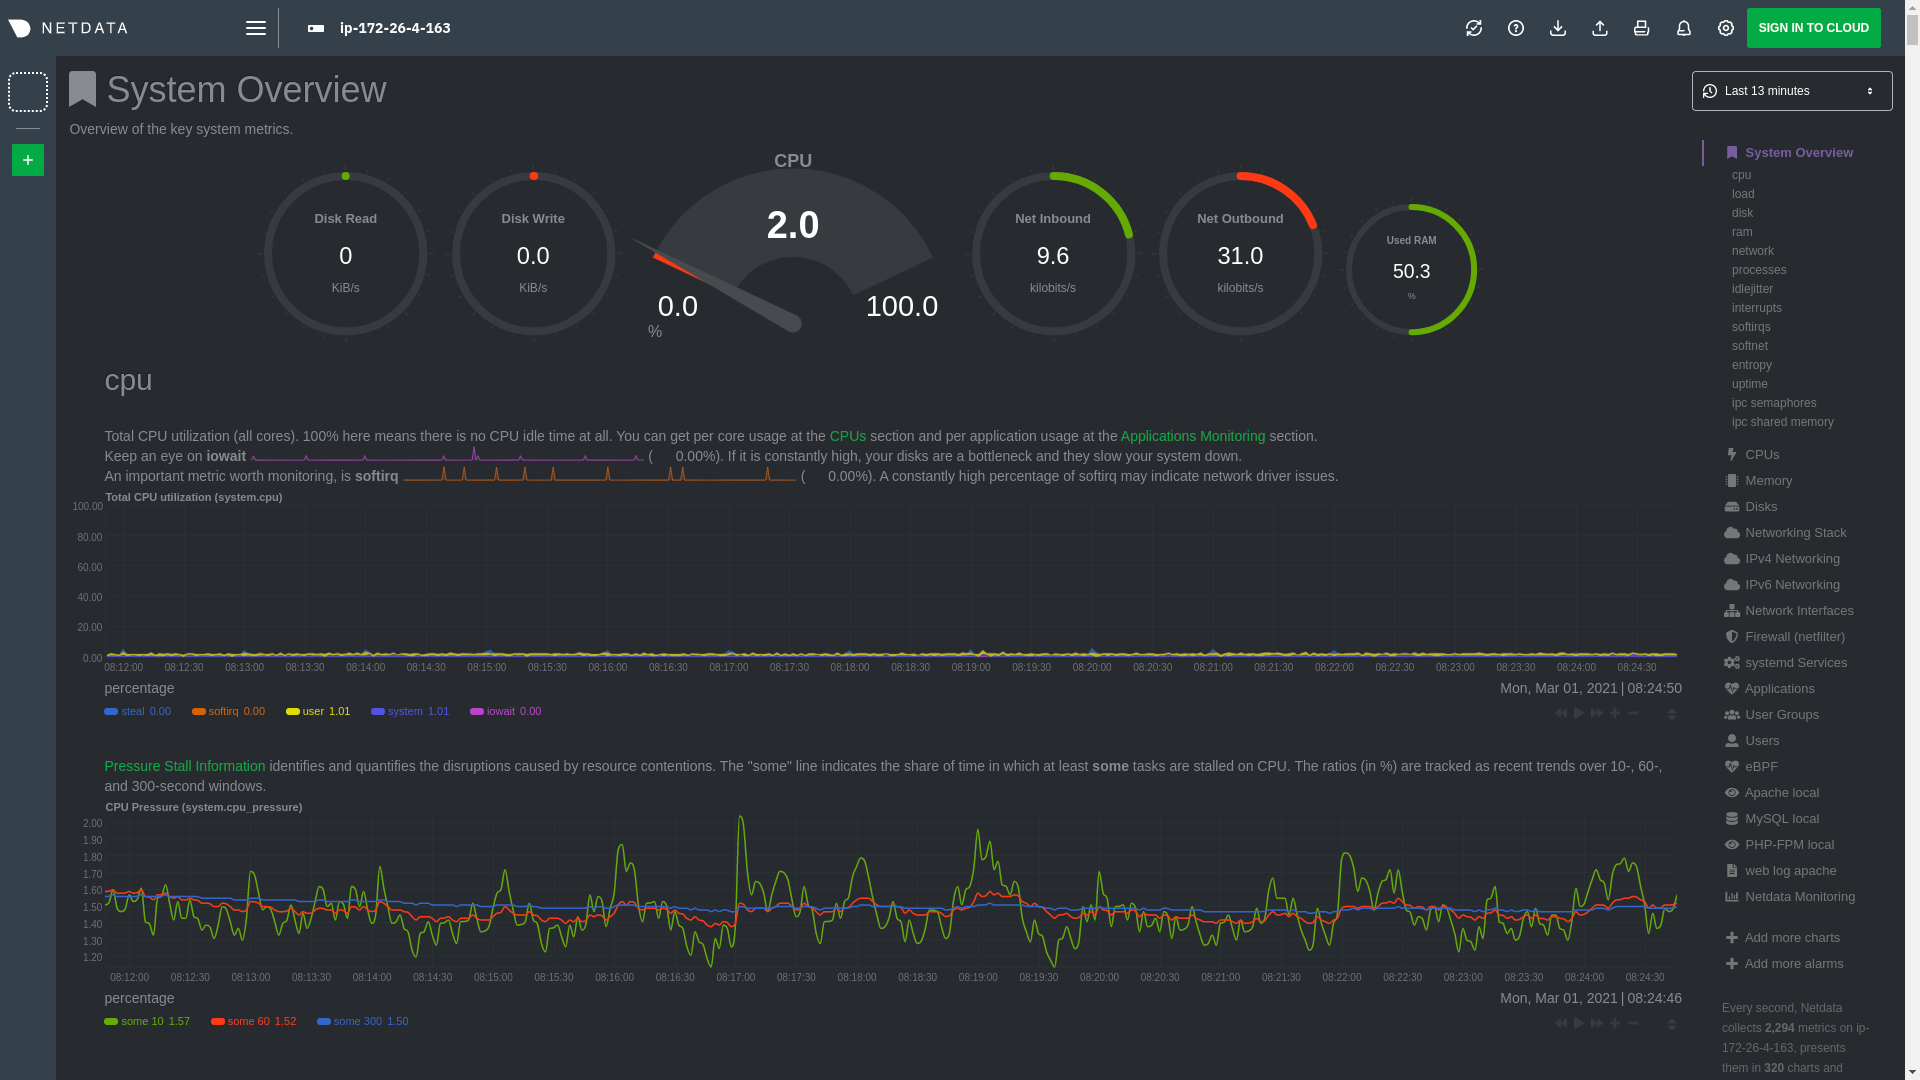 The Netdata dashboard